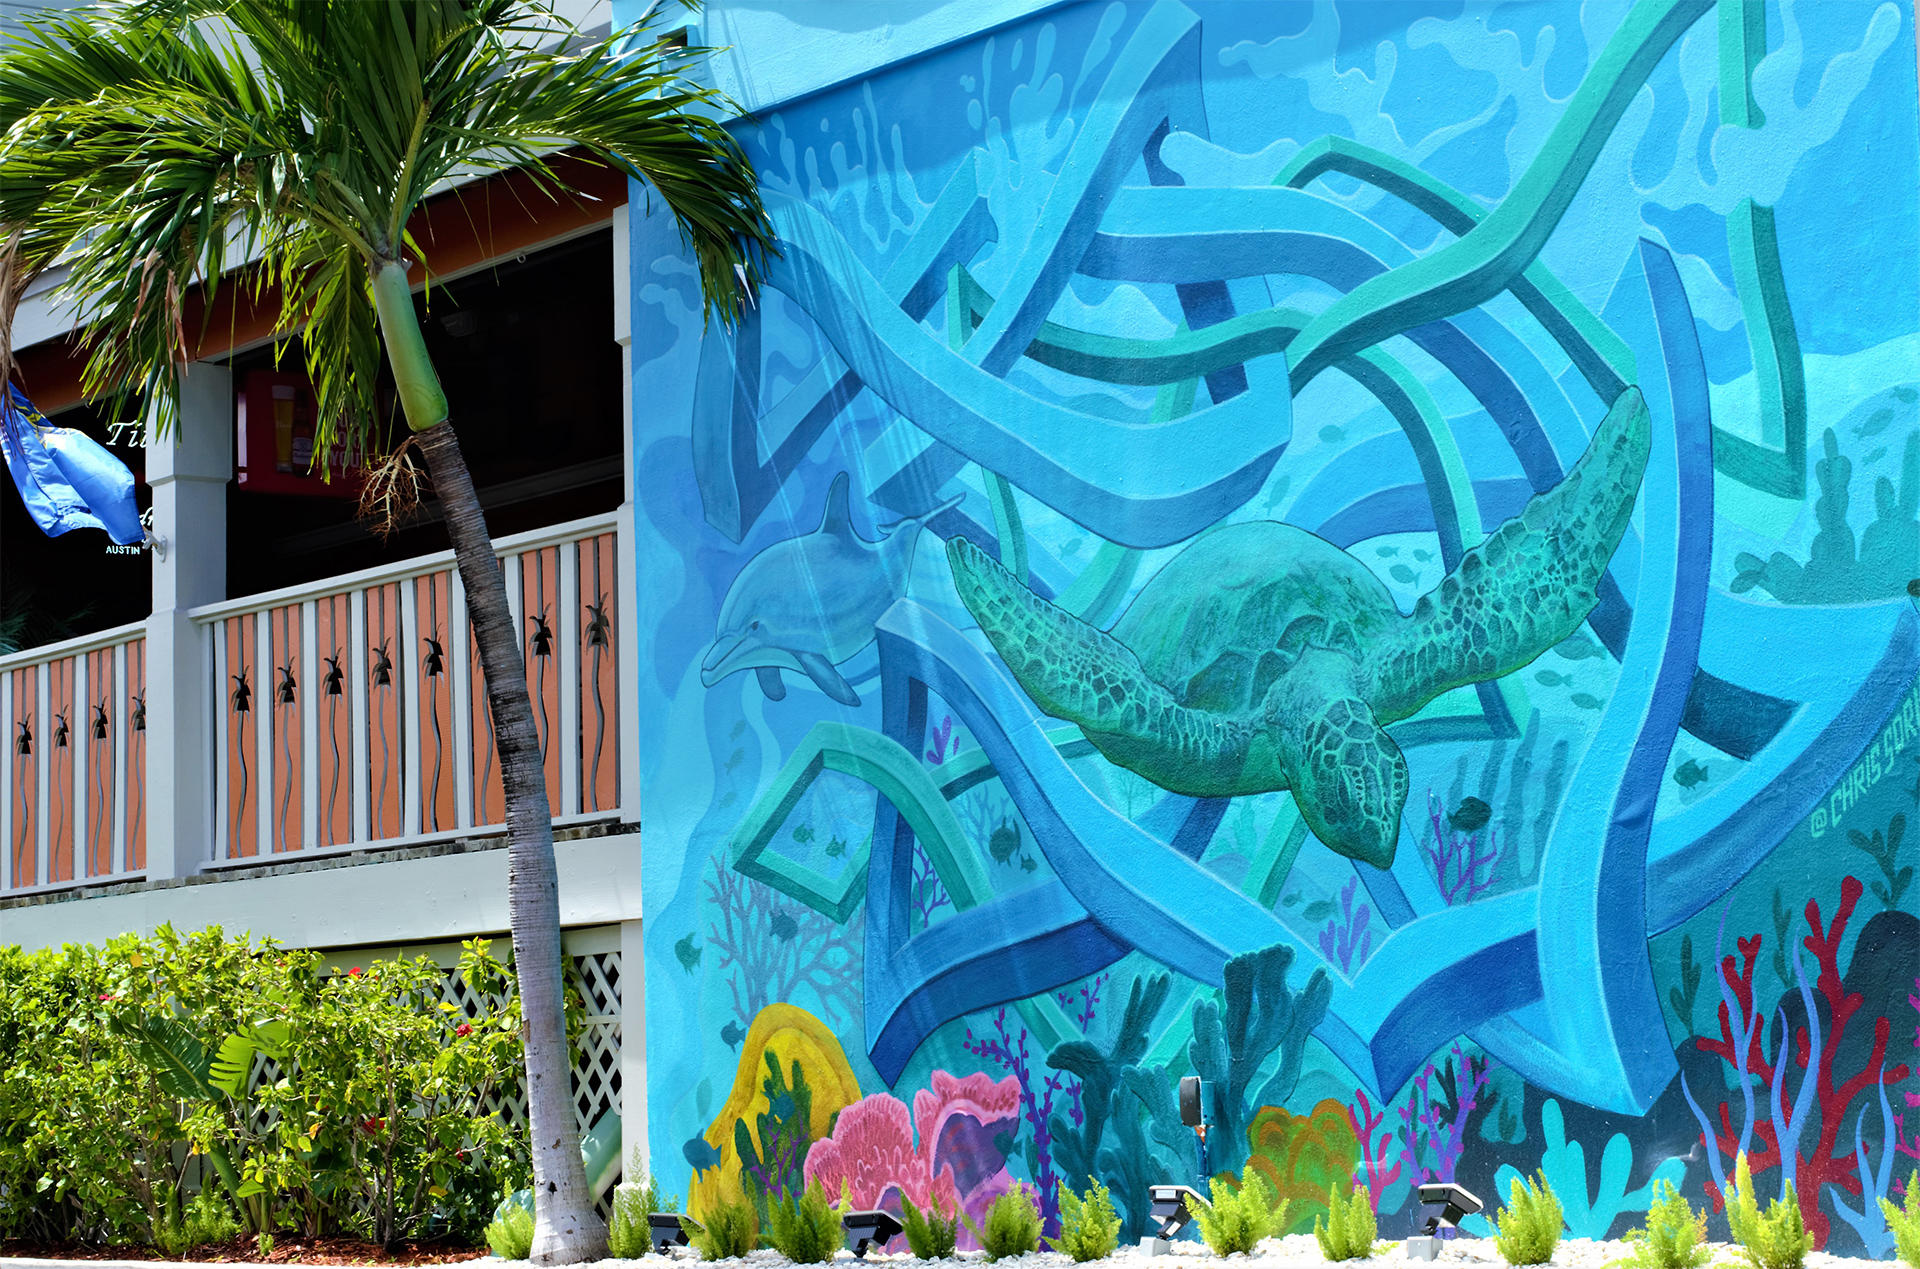 a large mural of a sea turtle